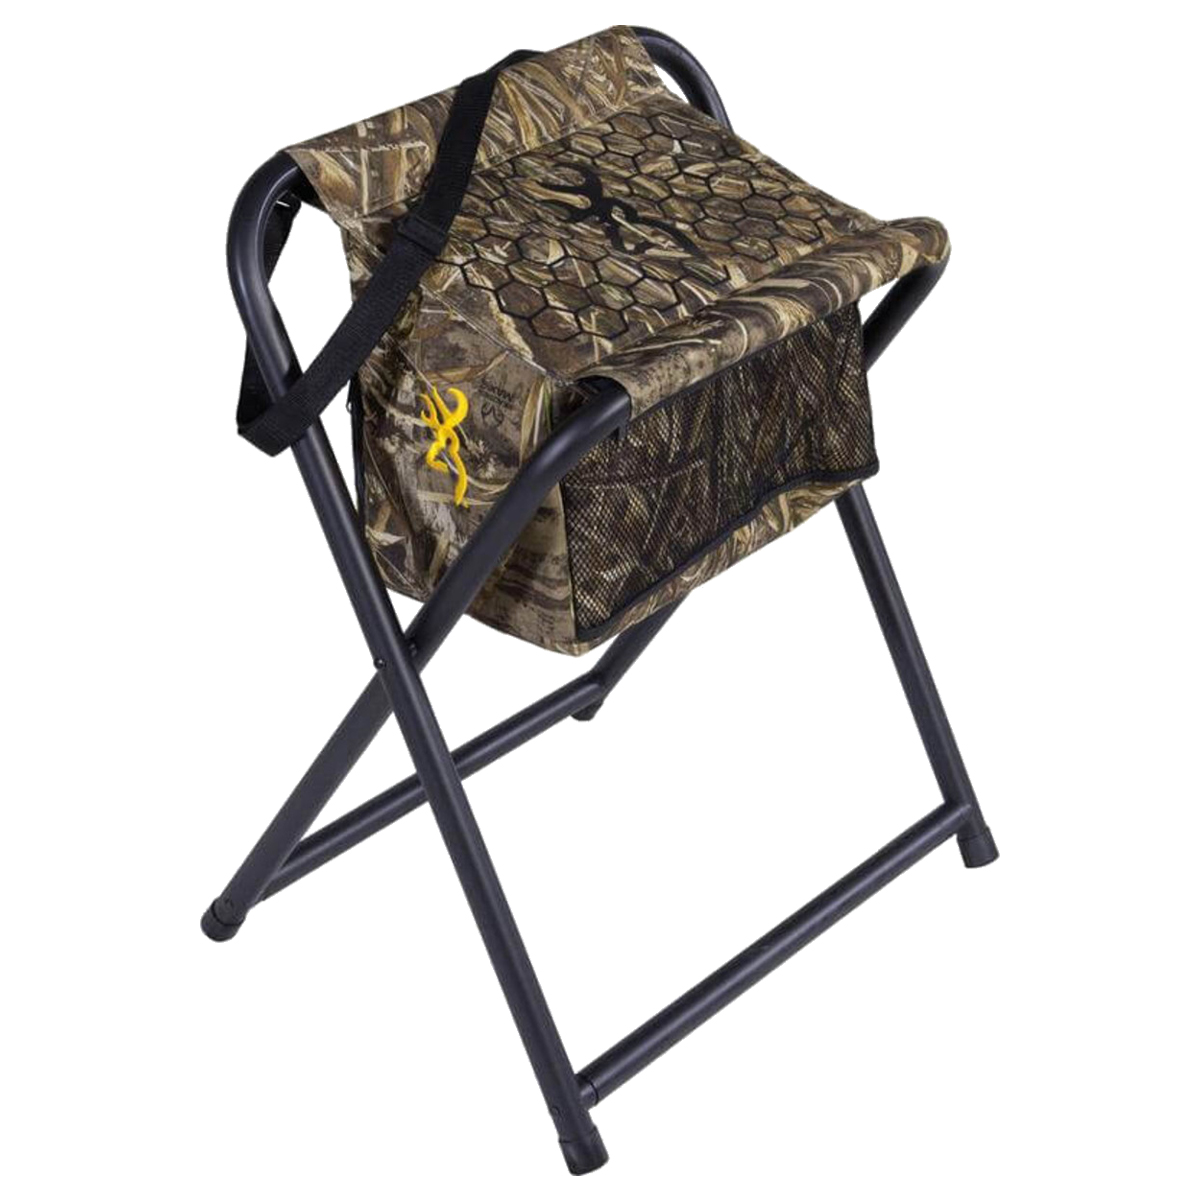 big and tall hunting chairs refurbished kitchen table duck stools for the blind field marsh alps browning steadyready stool